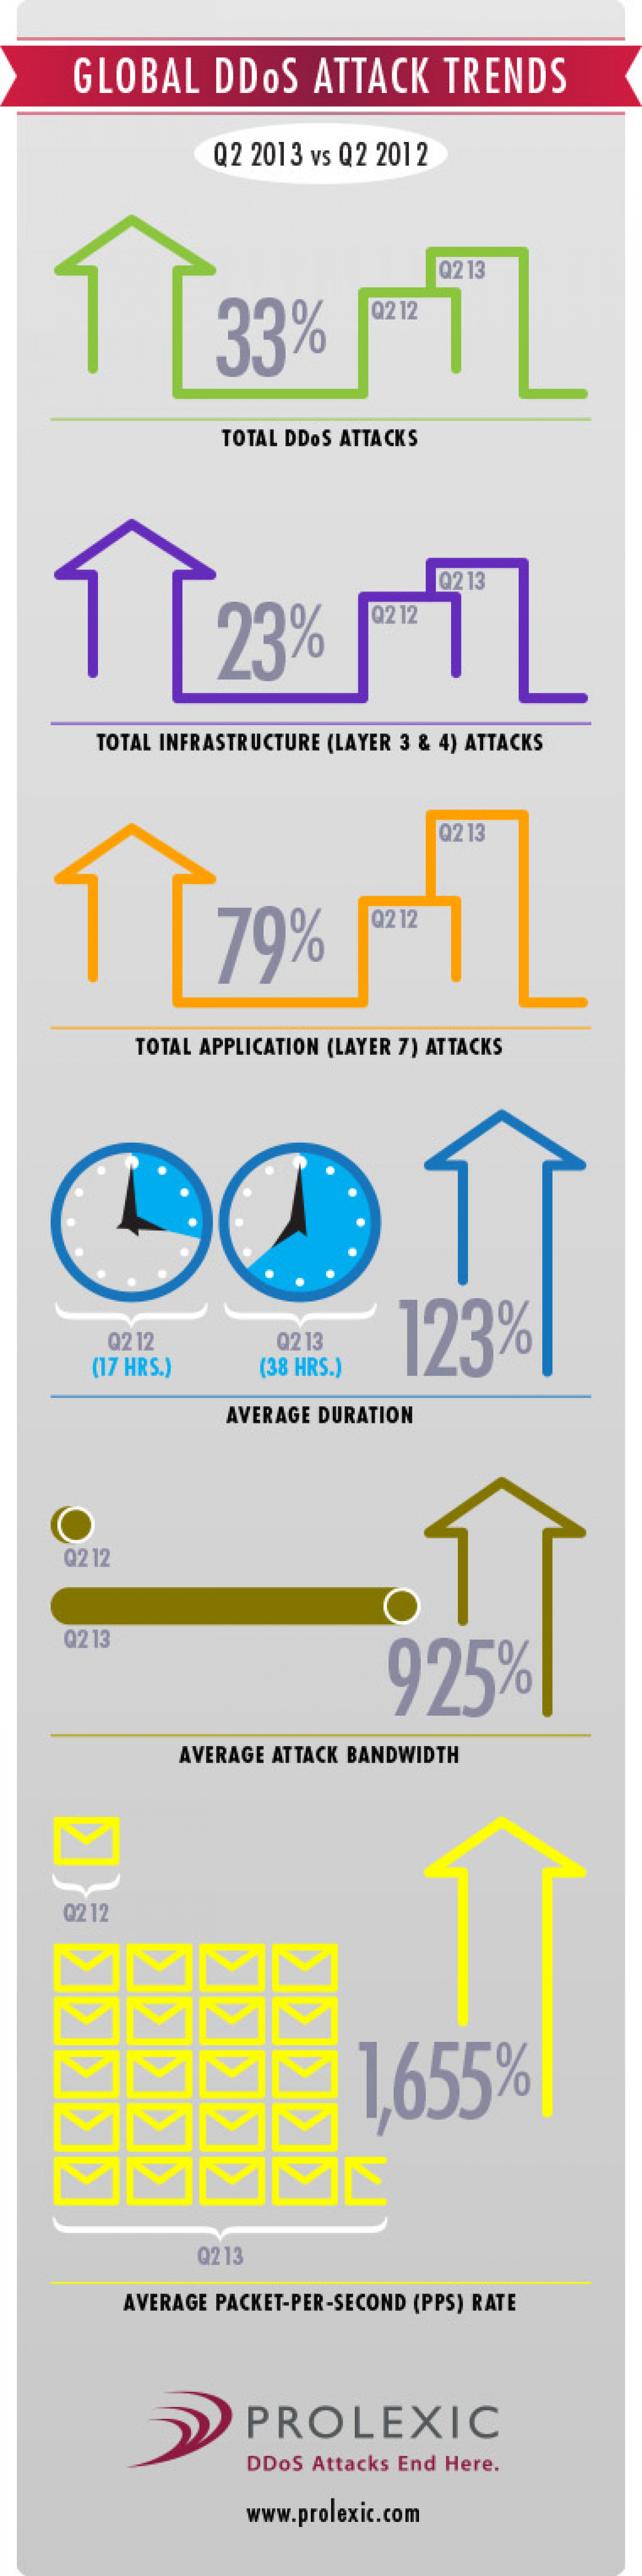 DDoS Attack Metrics for Q2 2013 vs. Q2 2012 By Prolexic Technologies Infographic